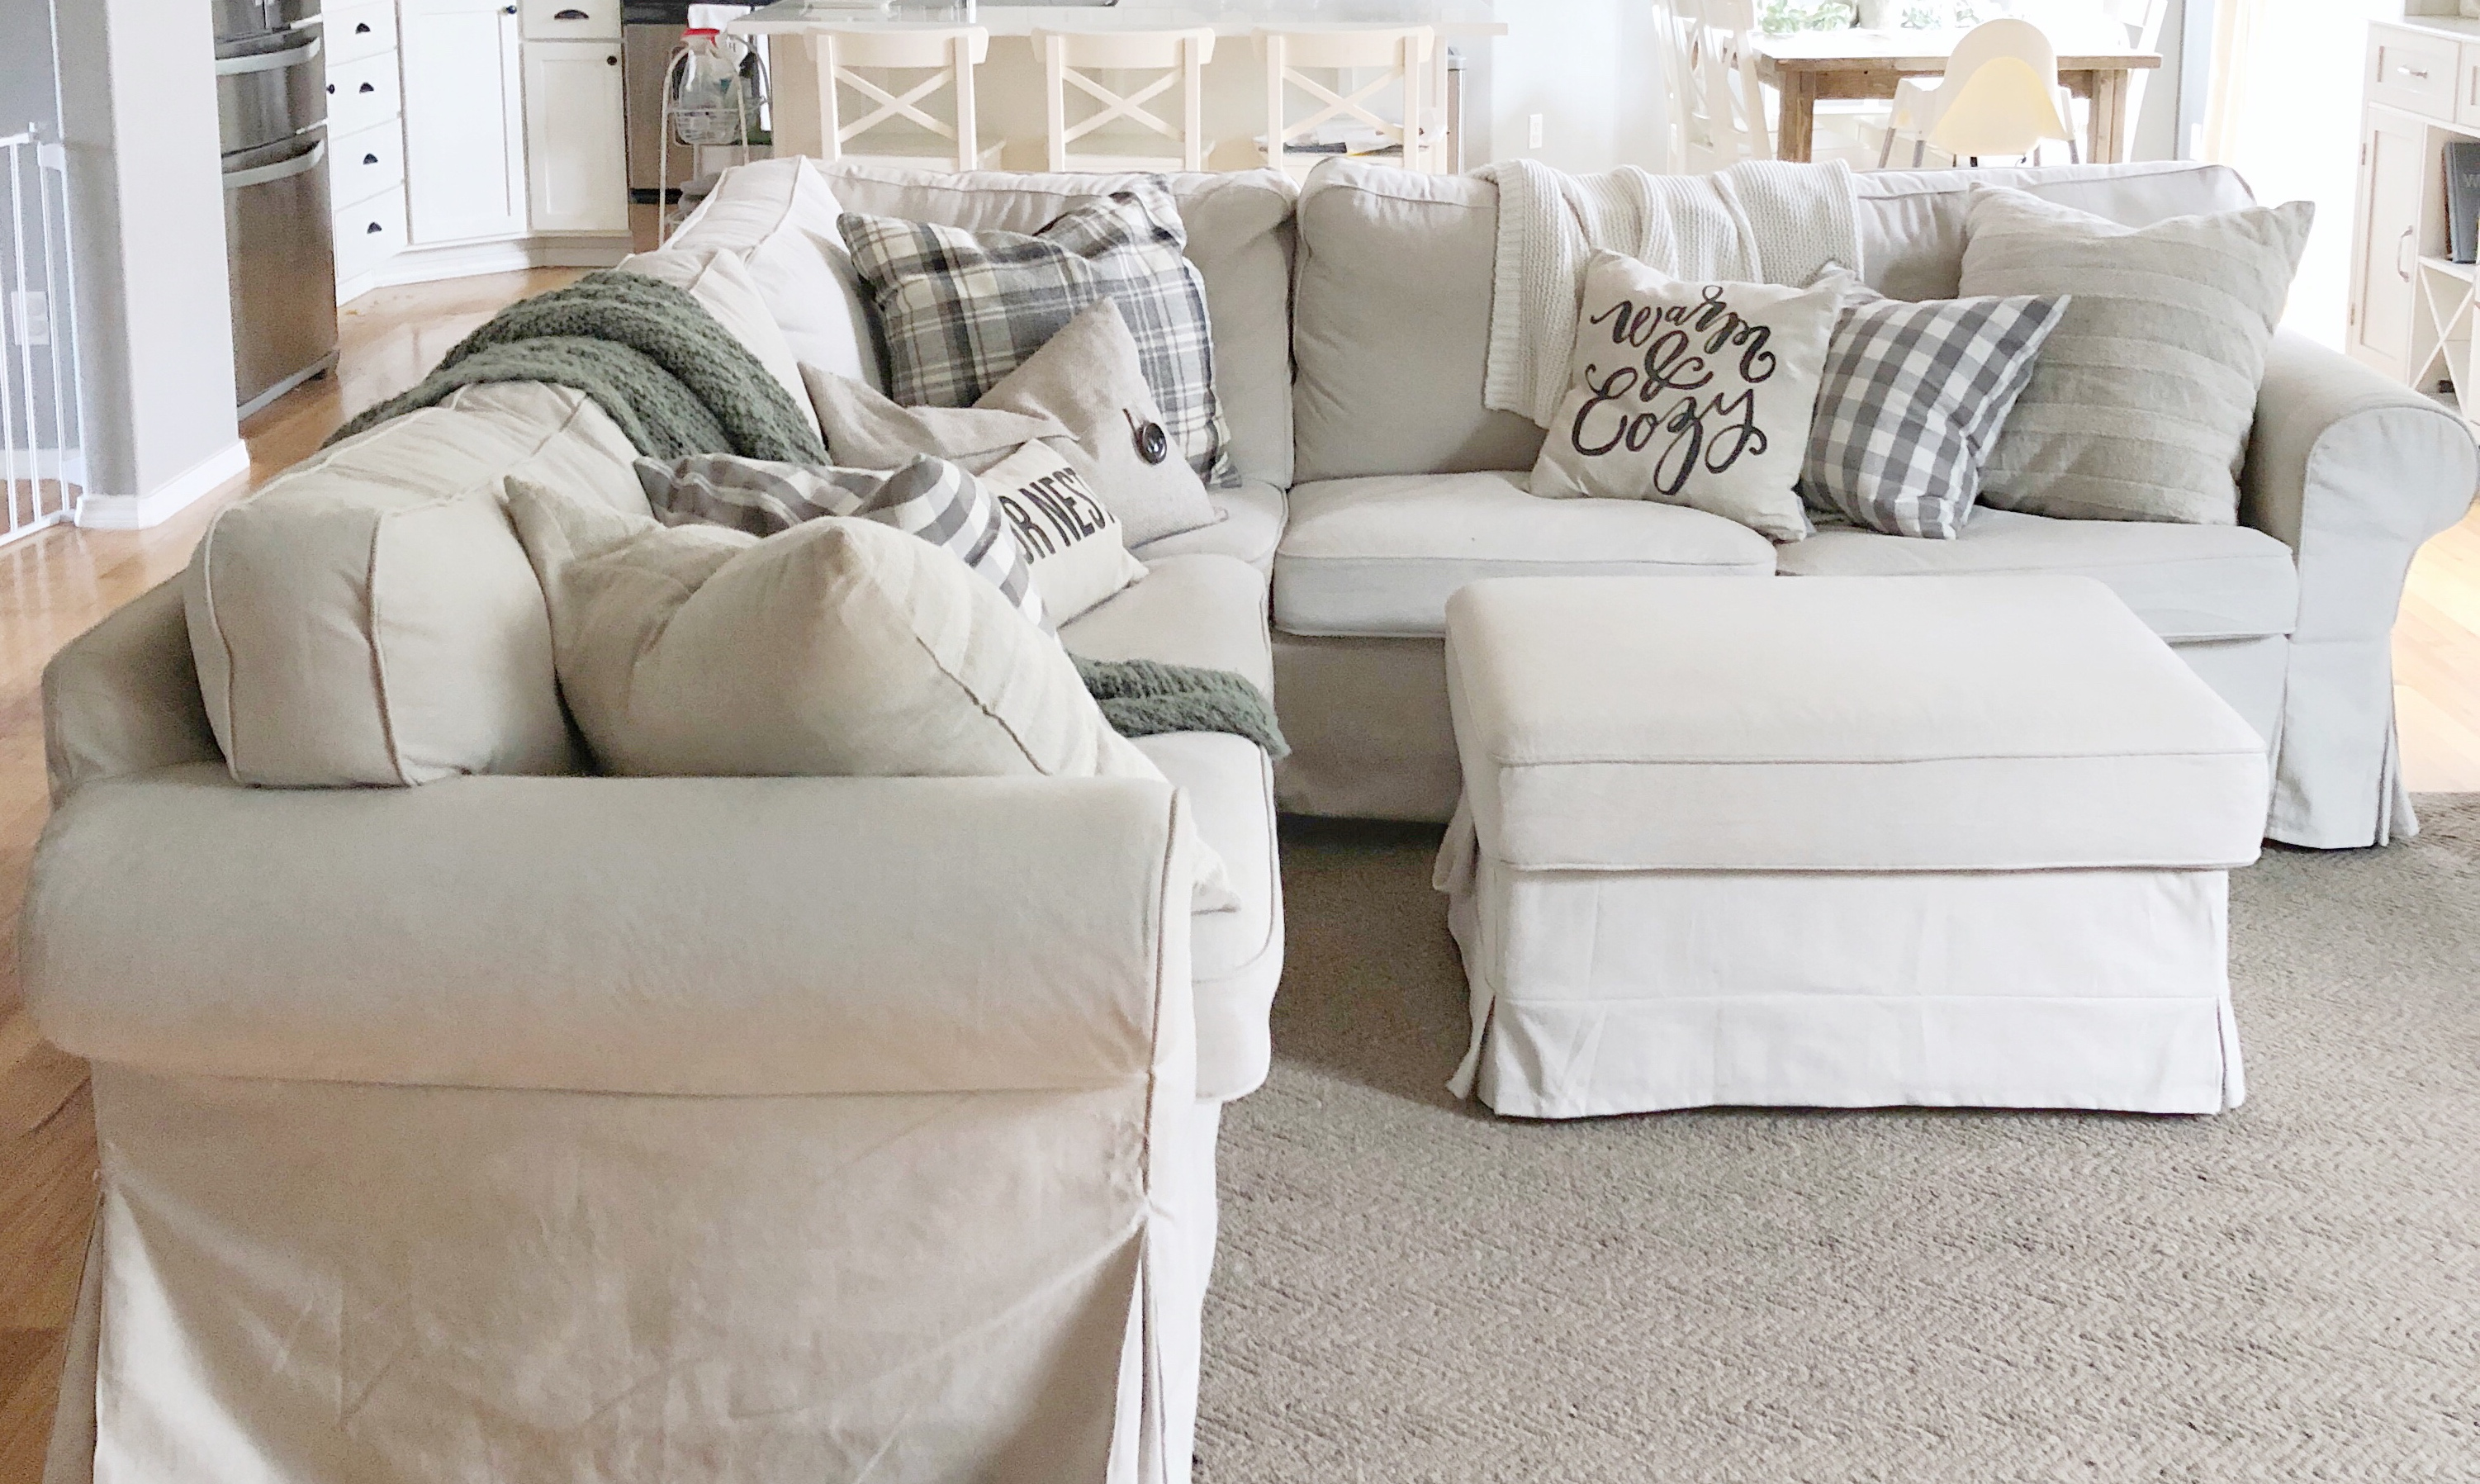 IKEA Ektorp Beige Slipcovered Couch Care {An easy & fast cleaning